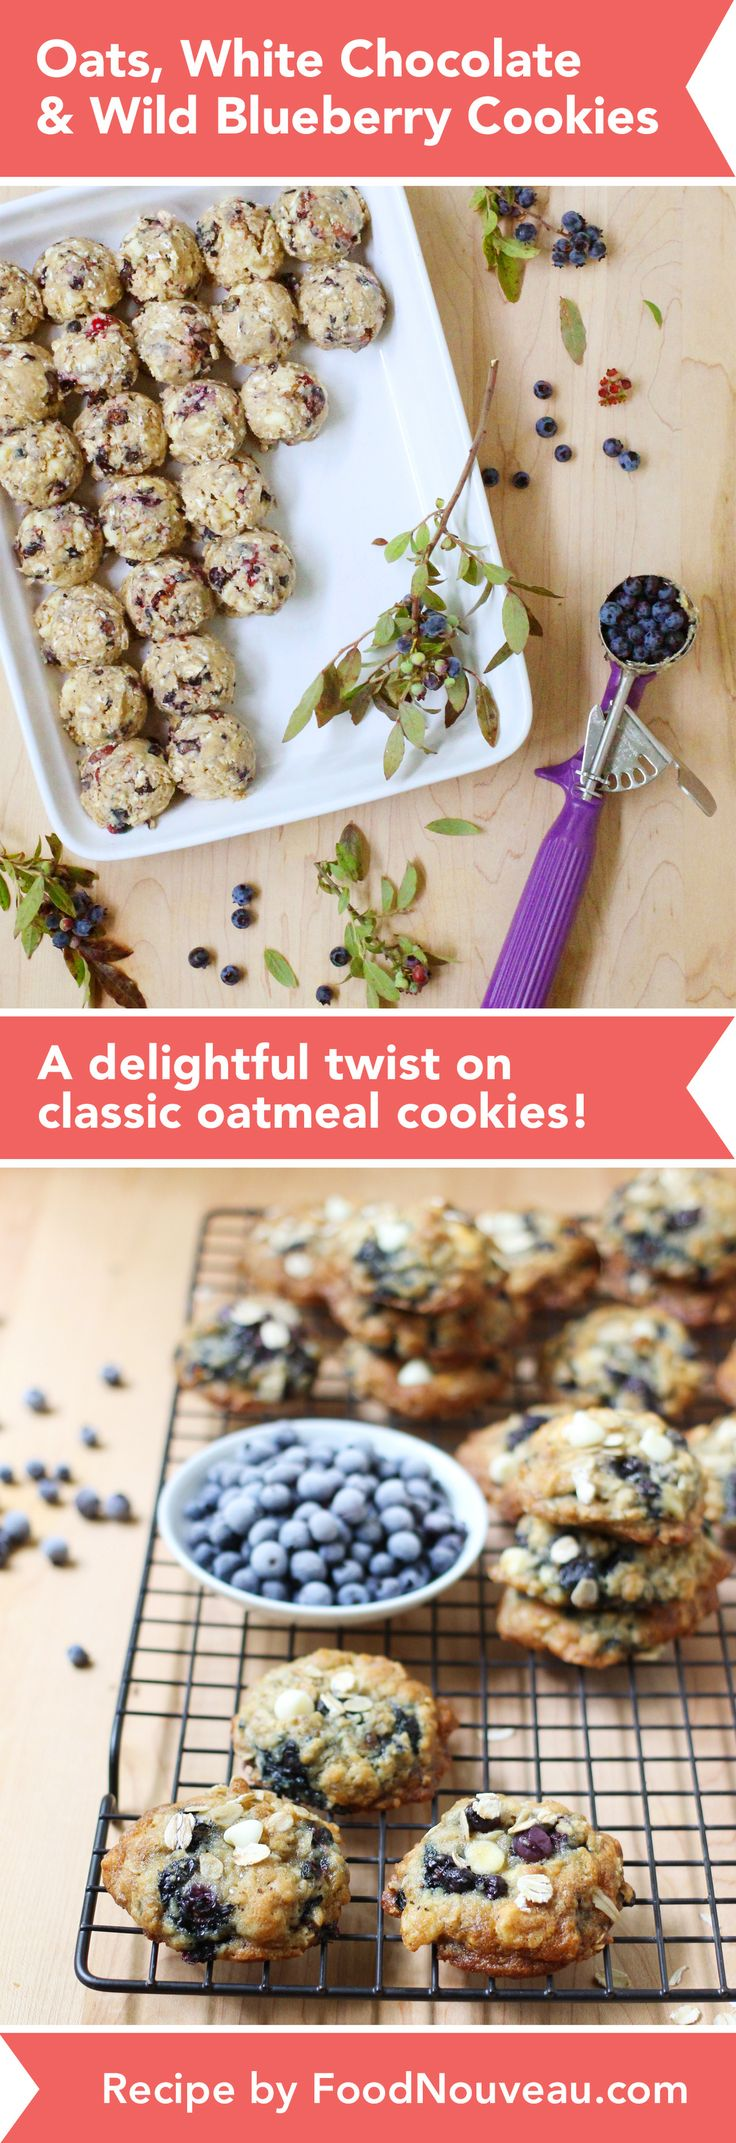 These Oats, White Chocolate & Wild Blueberry Cookies are a twist on classic oatmeal cookies: blueberries replace raisins to create a super flavorful treat. Oats, White Chocolate, and Wild Blueberry Cookies http://foodnouveau.com/recipes/desserts/cookies/oats-white-chocolate-wild-blueberry-cookies/